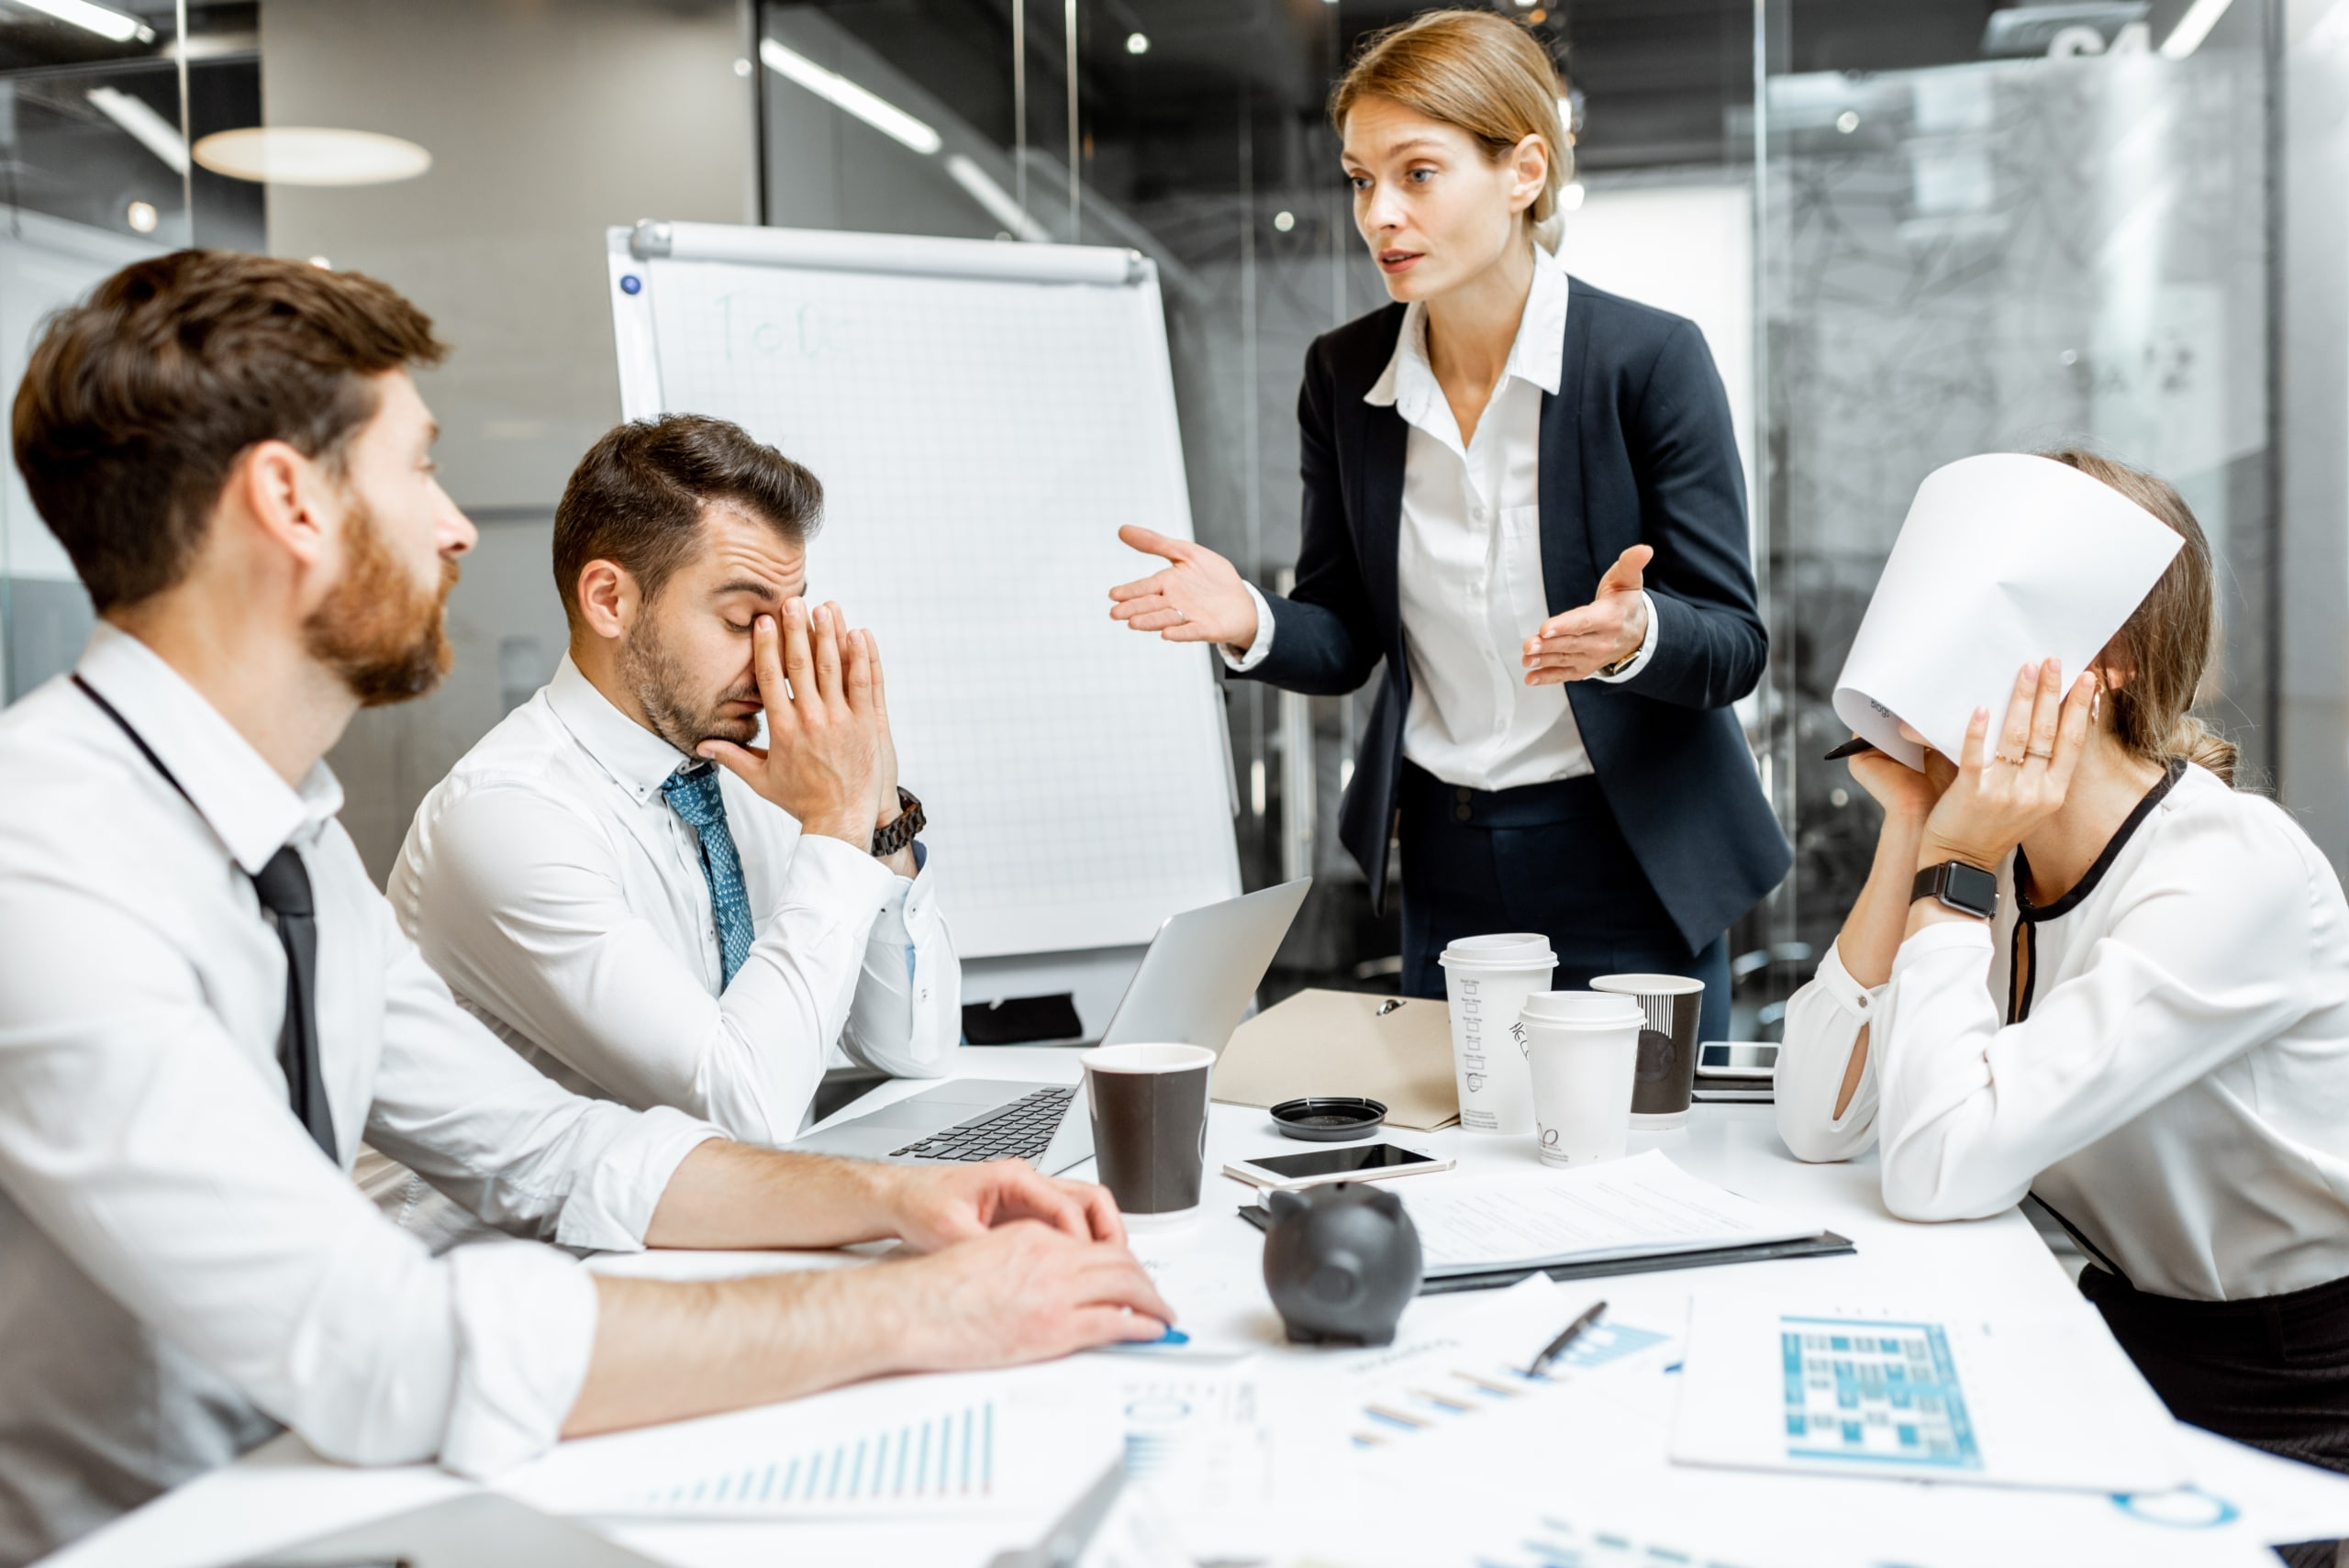 bad leader working with frustrated employees